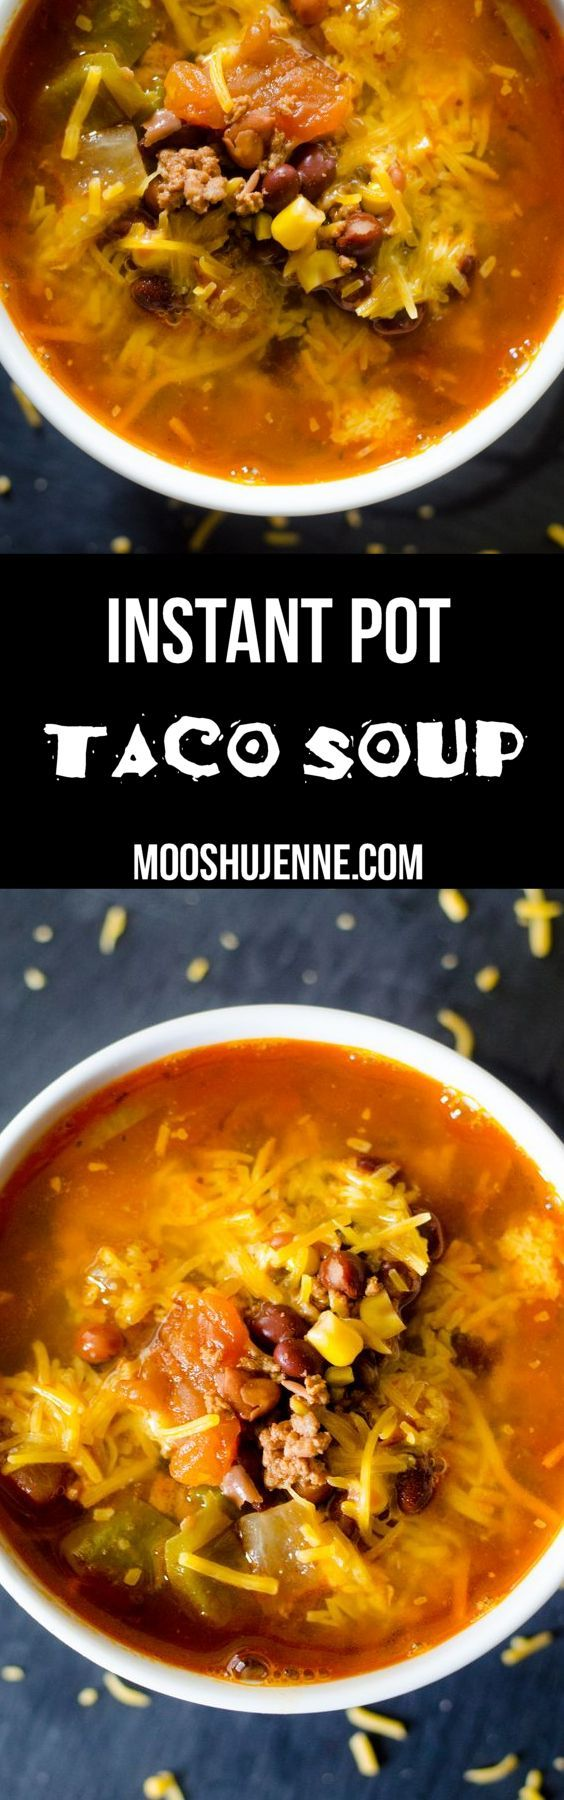 I am totally addicted to soups even in the summer. That when I hide out in the house working like crazy but need a good recipe for the instant pot like Instant Pot Taco Soup. I don't want to heat up the entire house with the oven,. Texas and the humidity